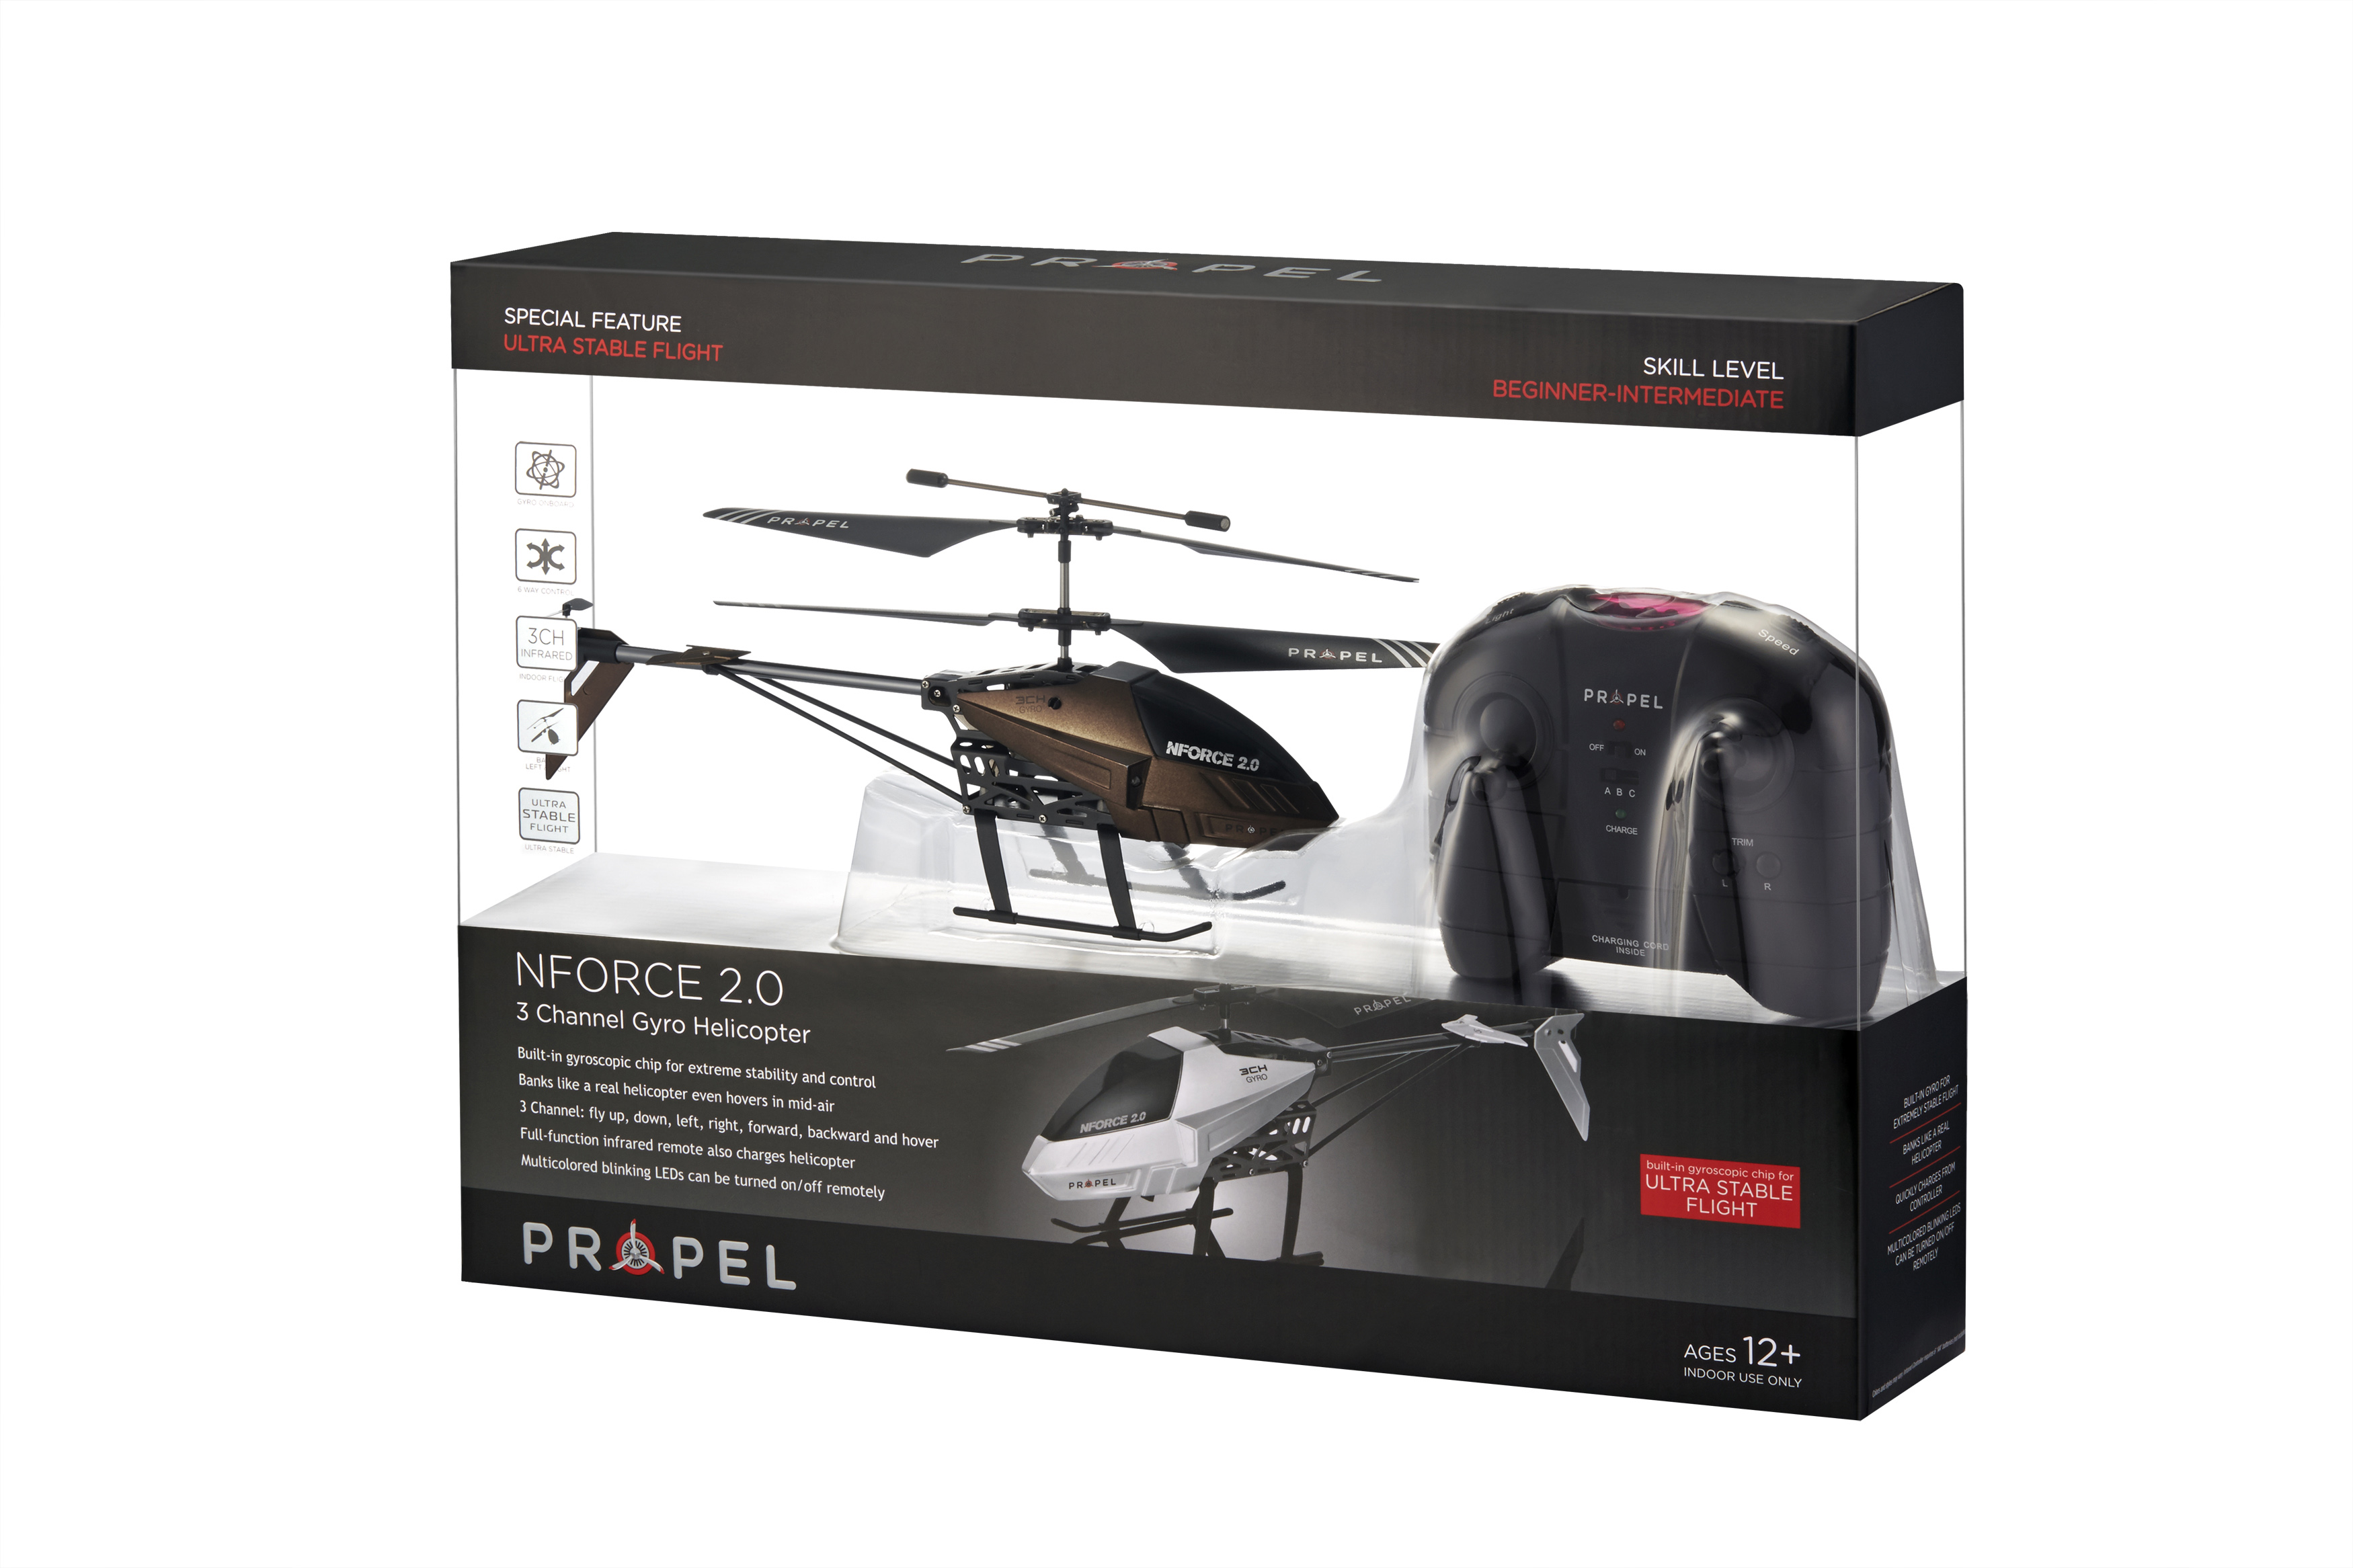 Propel Rc Helicopters Helicopter And Bridge Wallpaper